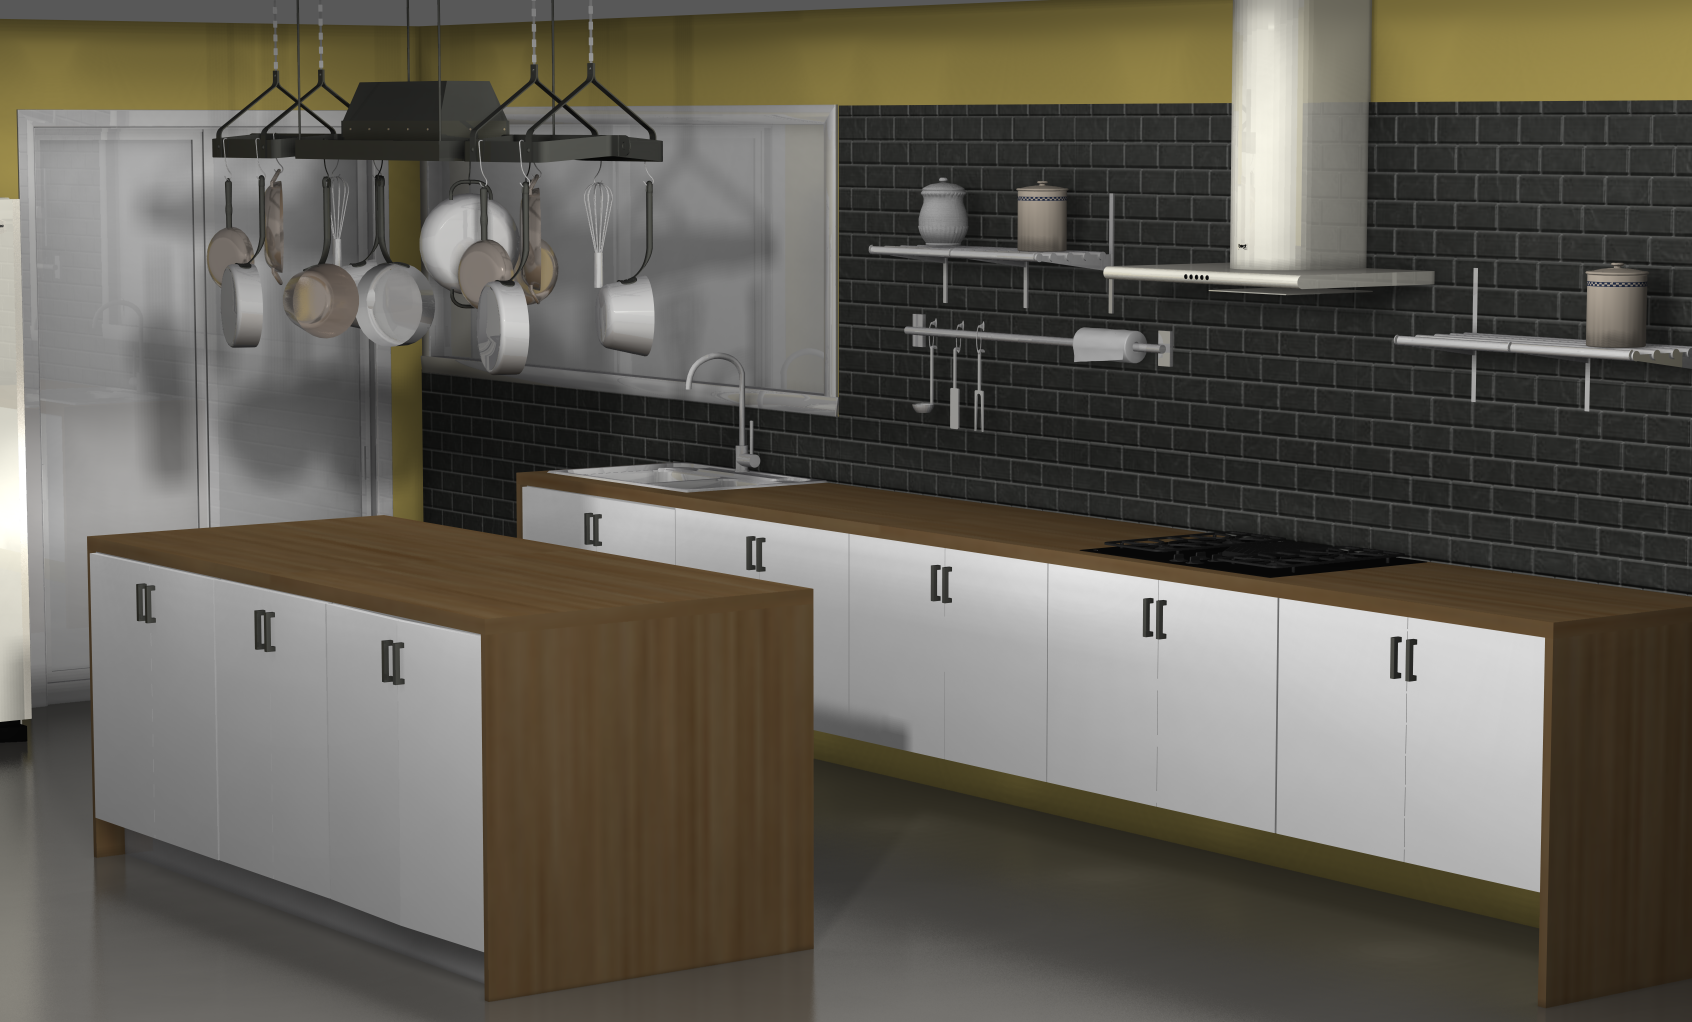 Kitchen design ideas an ikea kitchen with fewer wall cabinets for Kitchen units on one wall